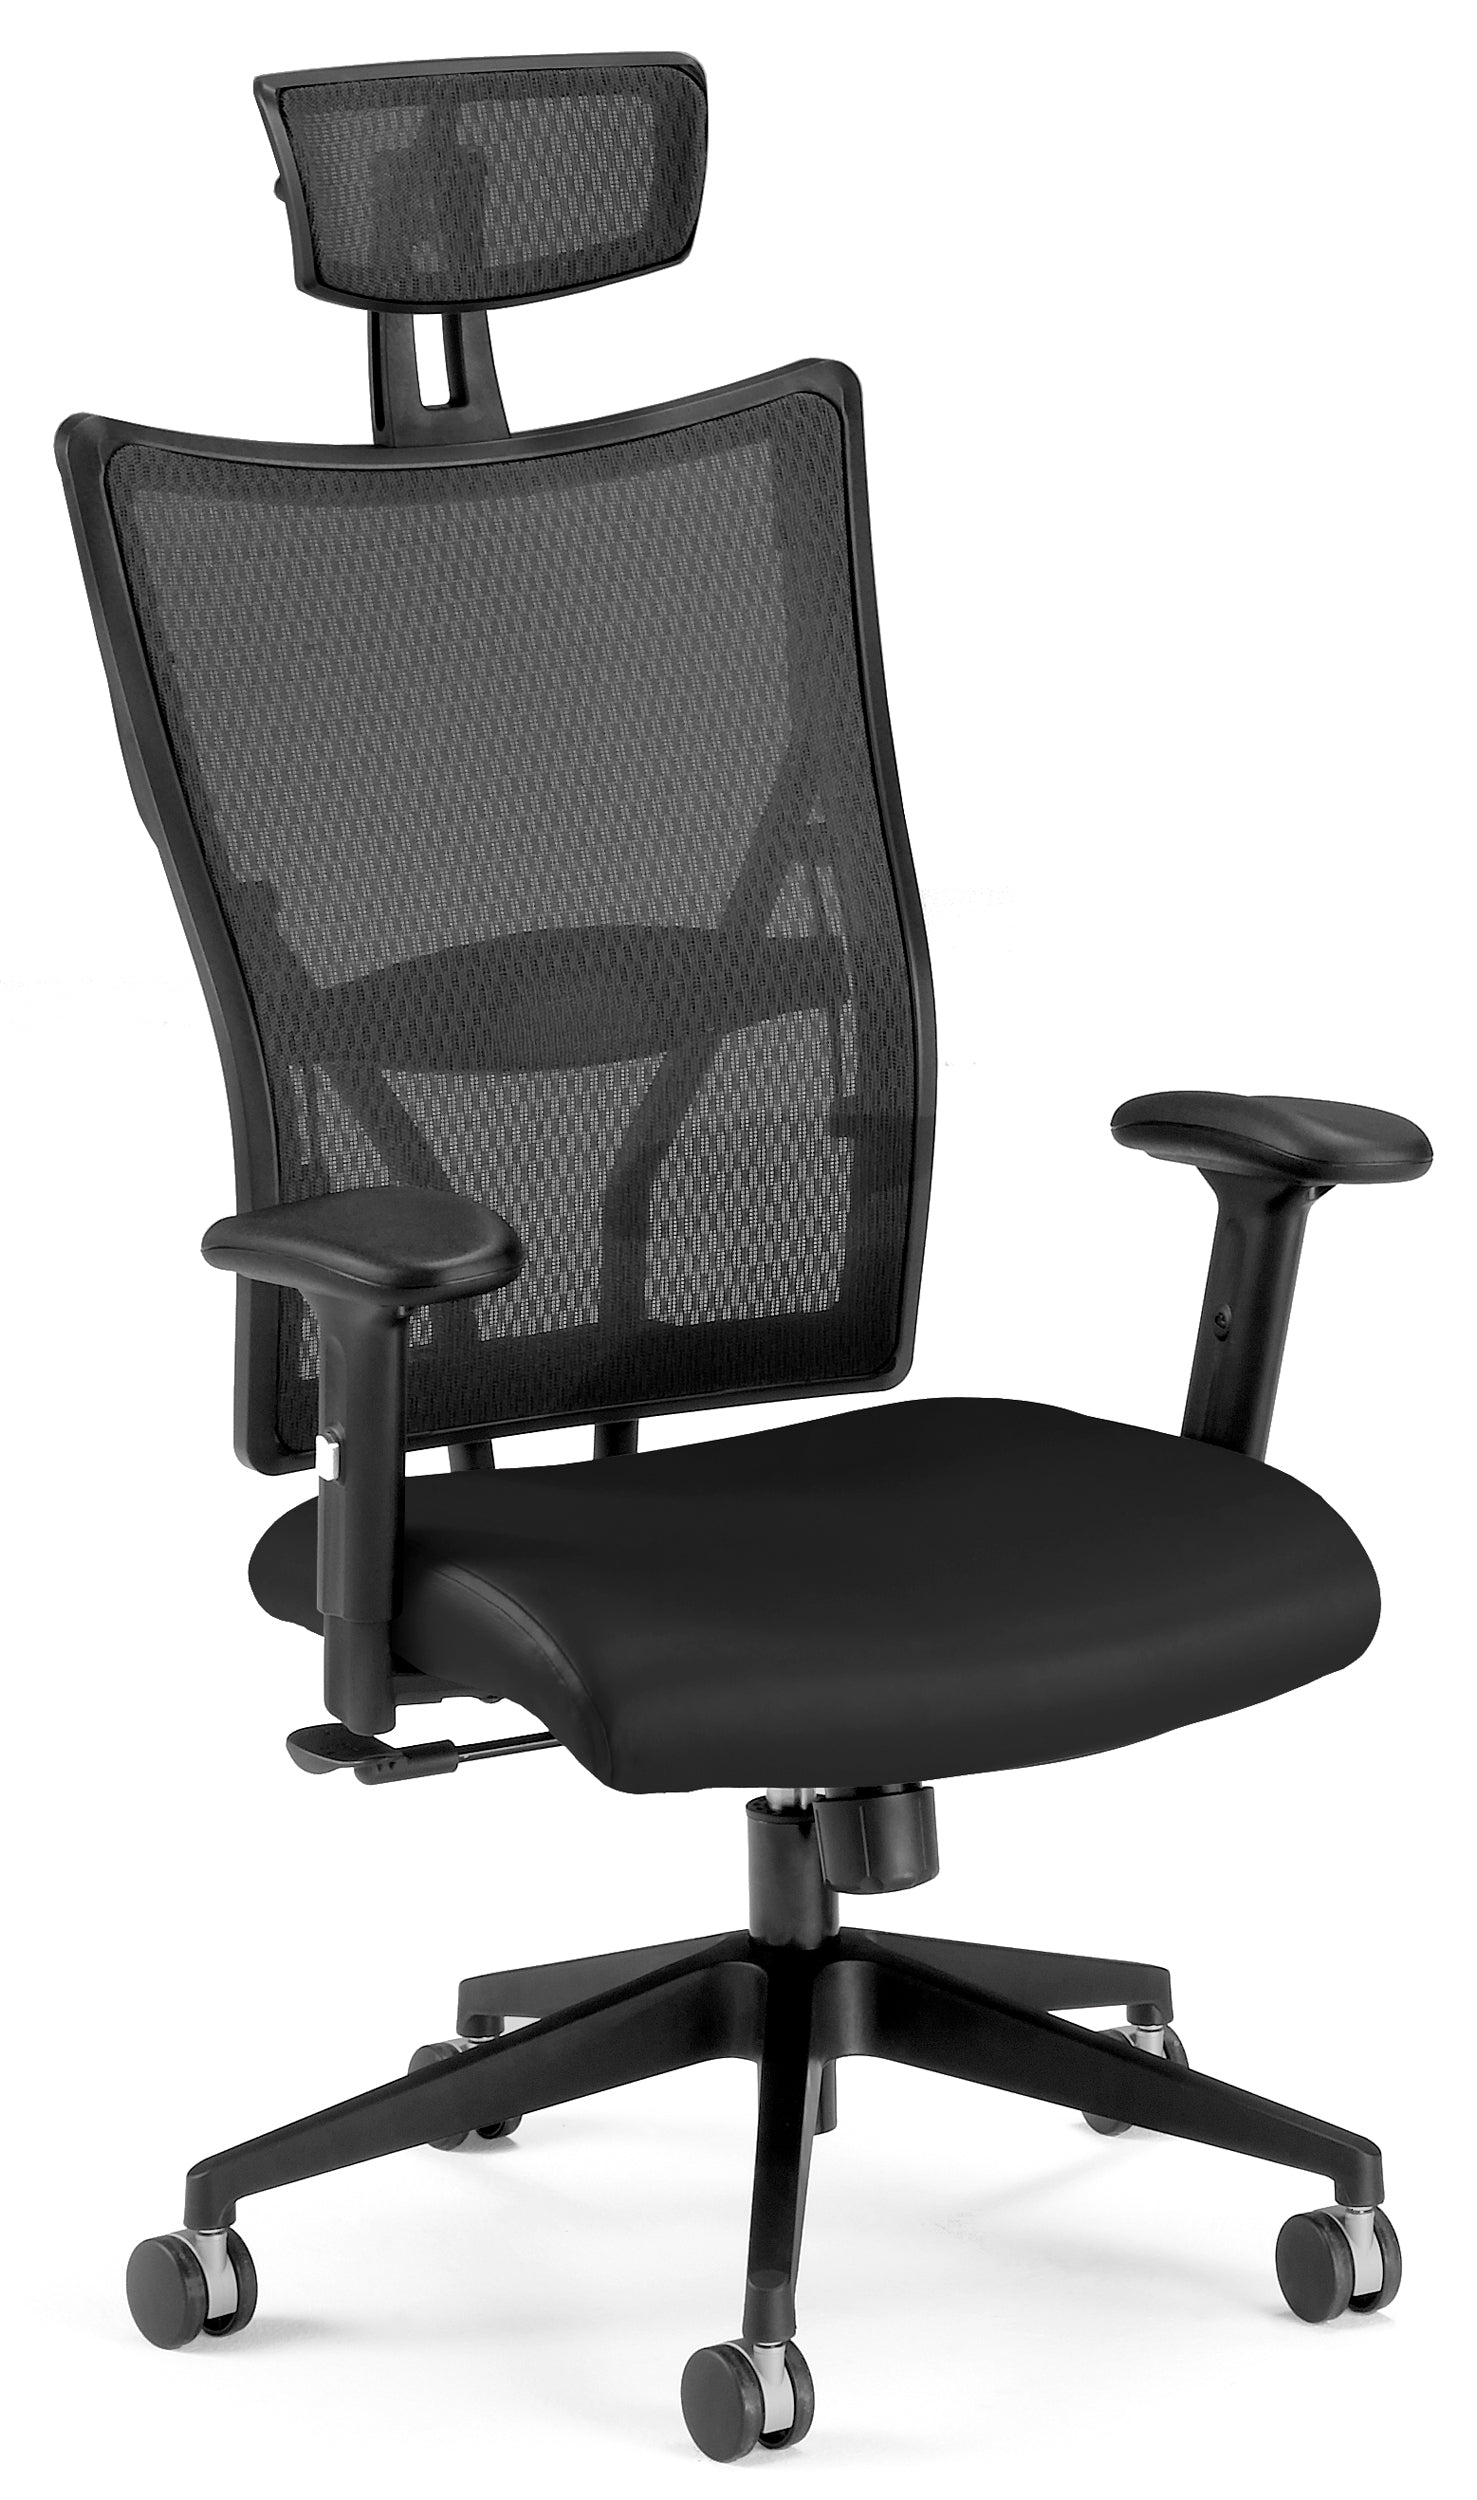 590-L Talisto Series High-Back Leather / Mesh Office Headrest Chair